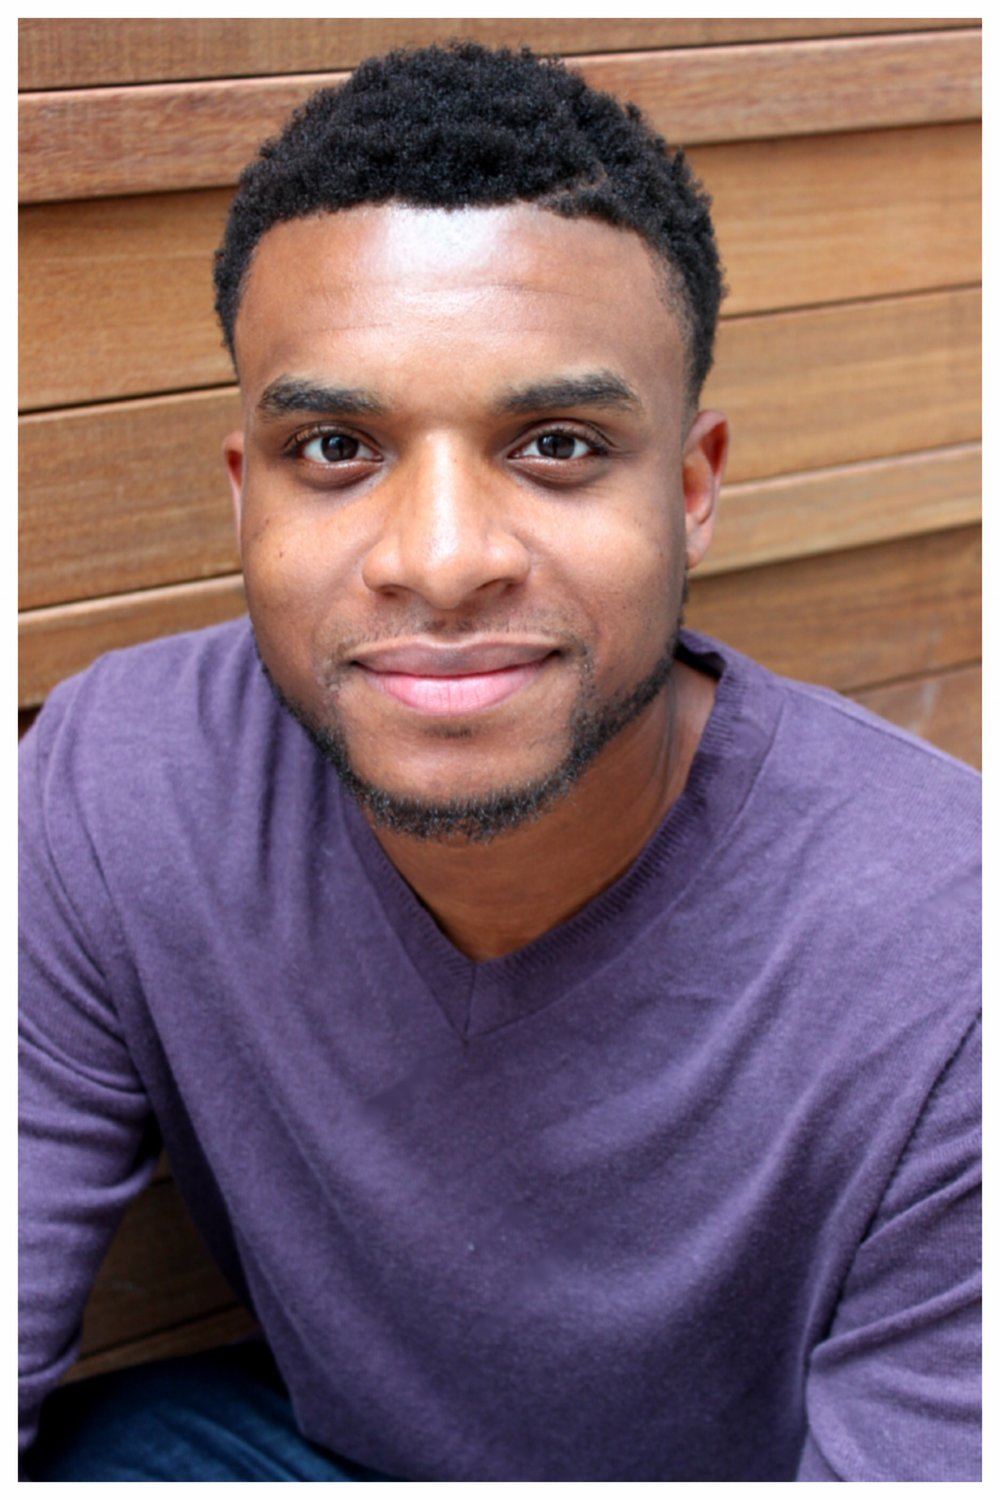 KEENAN SCOTT II - (PLAYWRIGHT)A graduate of Frostburg State University, Keenan Scott II is a native New Yorker. Born and raised in Flushing, Queens, Keenan is truly a renaissance man. He is a writer, actor and producer of new work. Inspired by the everyday life around him, he loves to lend a voice to people that cannot speak for themselves.As a quiet and shy child Keenan found freedom in putting words down on the page. A self-published author, a few of Keenan's other works include, Tulsa, Black Cotton and Today We Quit. What he found within writing allowed him to take a classroom project and heal the community. That work is entitled Thoughts of A Colored Man On A Day When the Sun Set Too Early.